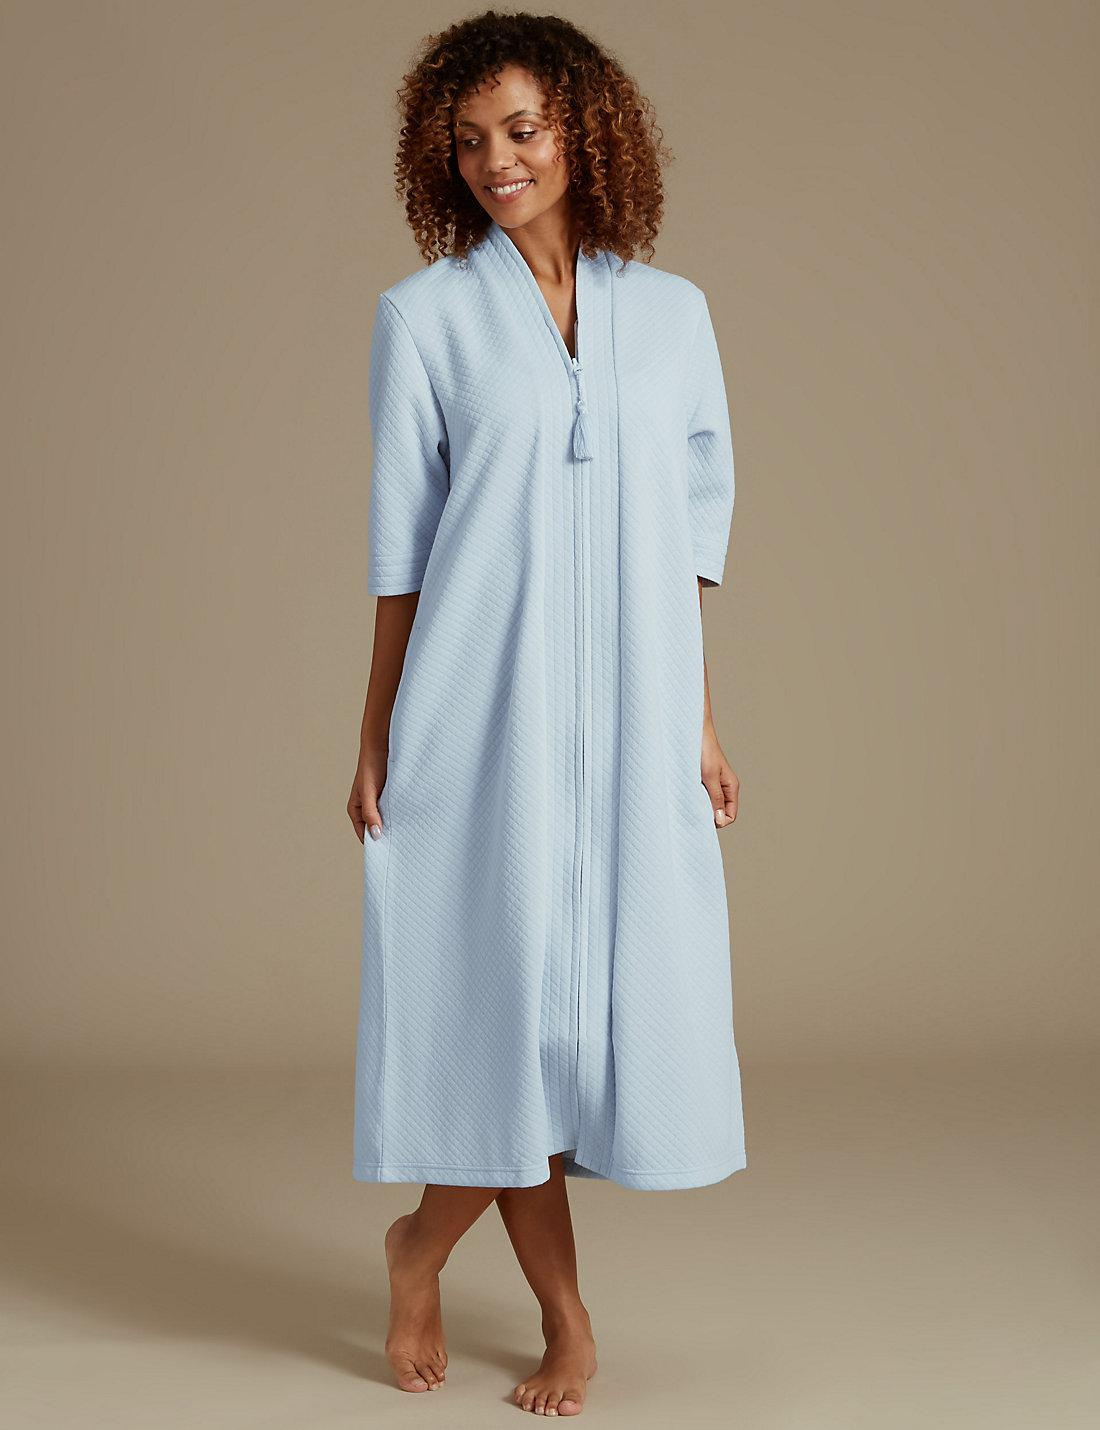 Lyst - Marks & spencer Quilted Zip Through Dressing Gown in Blue